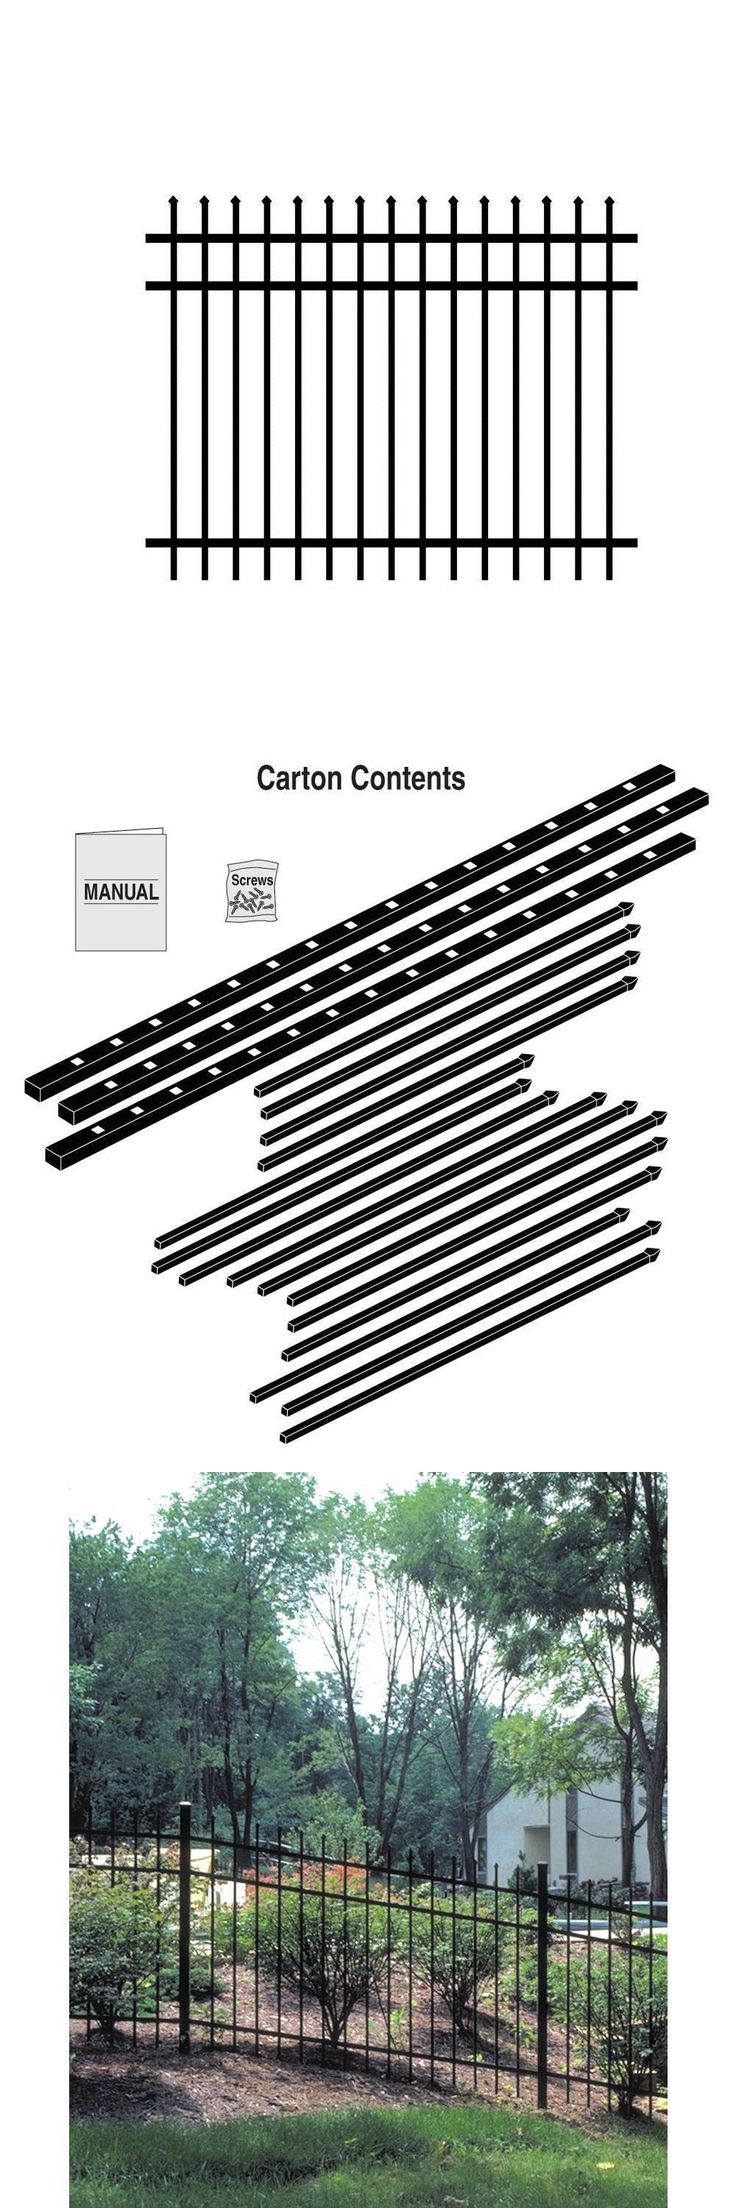 Fence Panels 139946: Outdoor Backyard Lawn 3 Rail Unassembled Fence Panel 4 X 6 Ft. Black Aluminum -> BUY IT NOW ONLY: $78.24 on eBay!